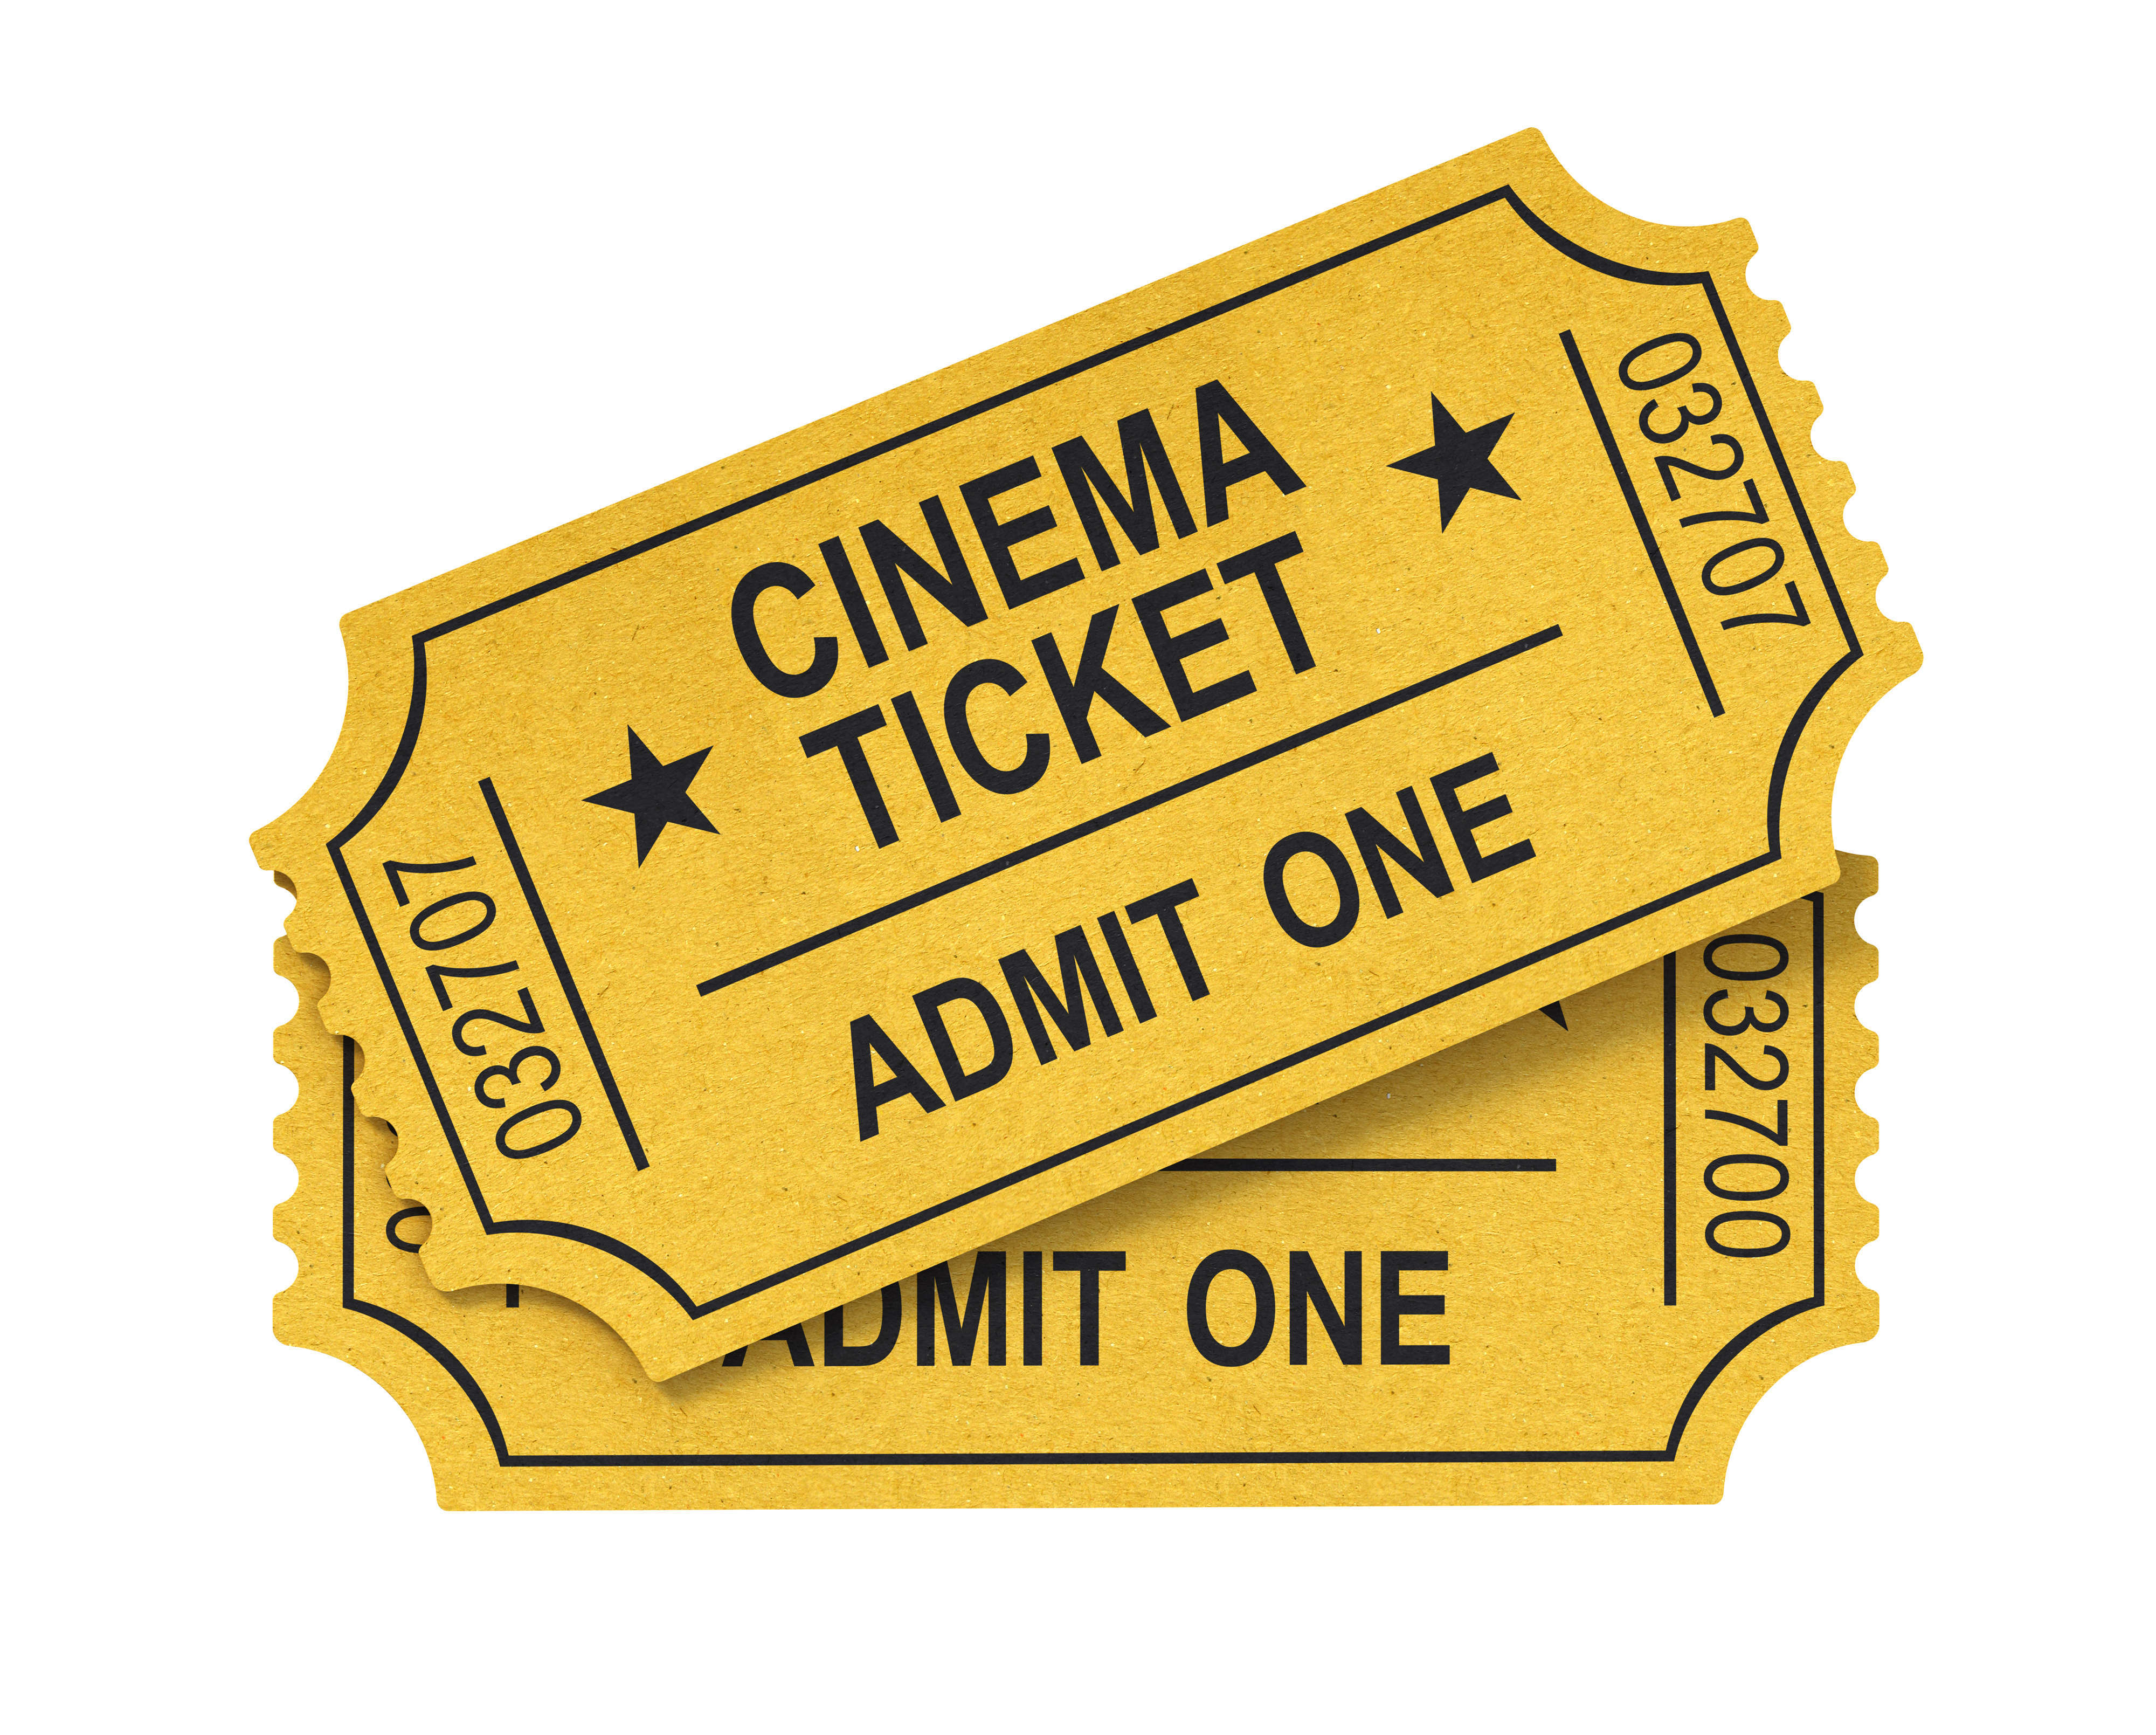 Tickets The 72 Project. Tickets The 72 Project. Movie Theater Ticket Clip Art .